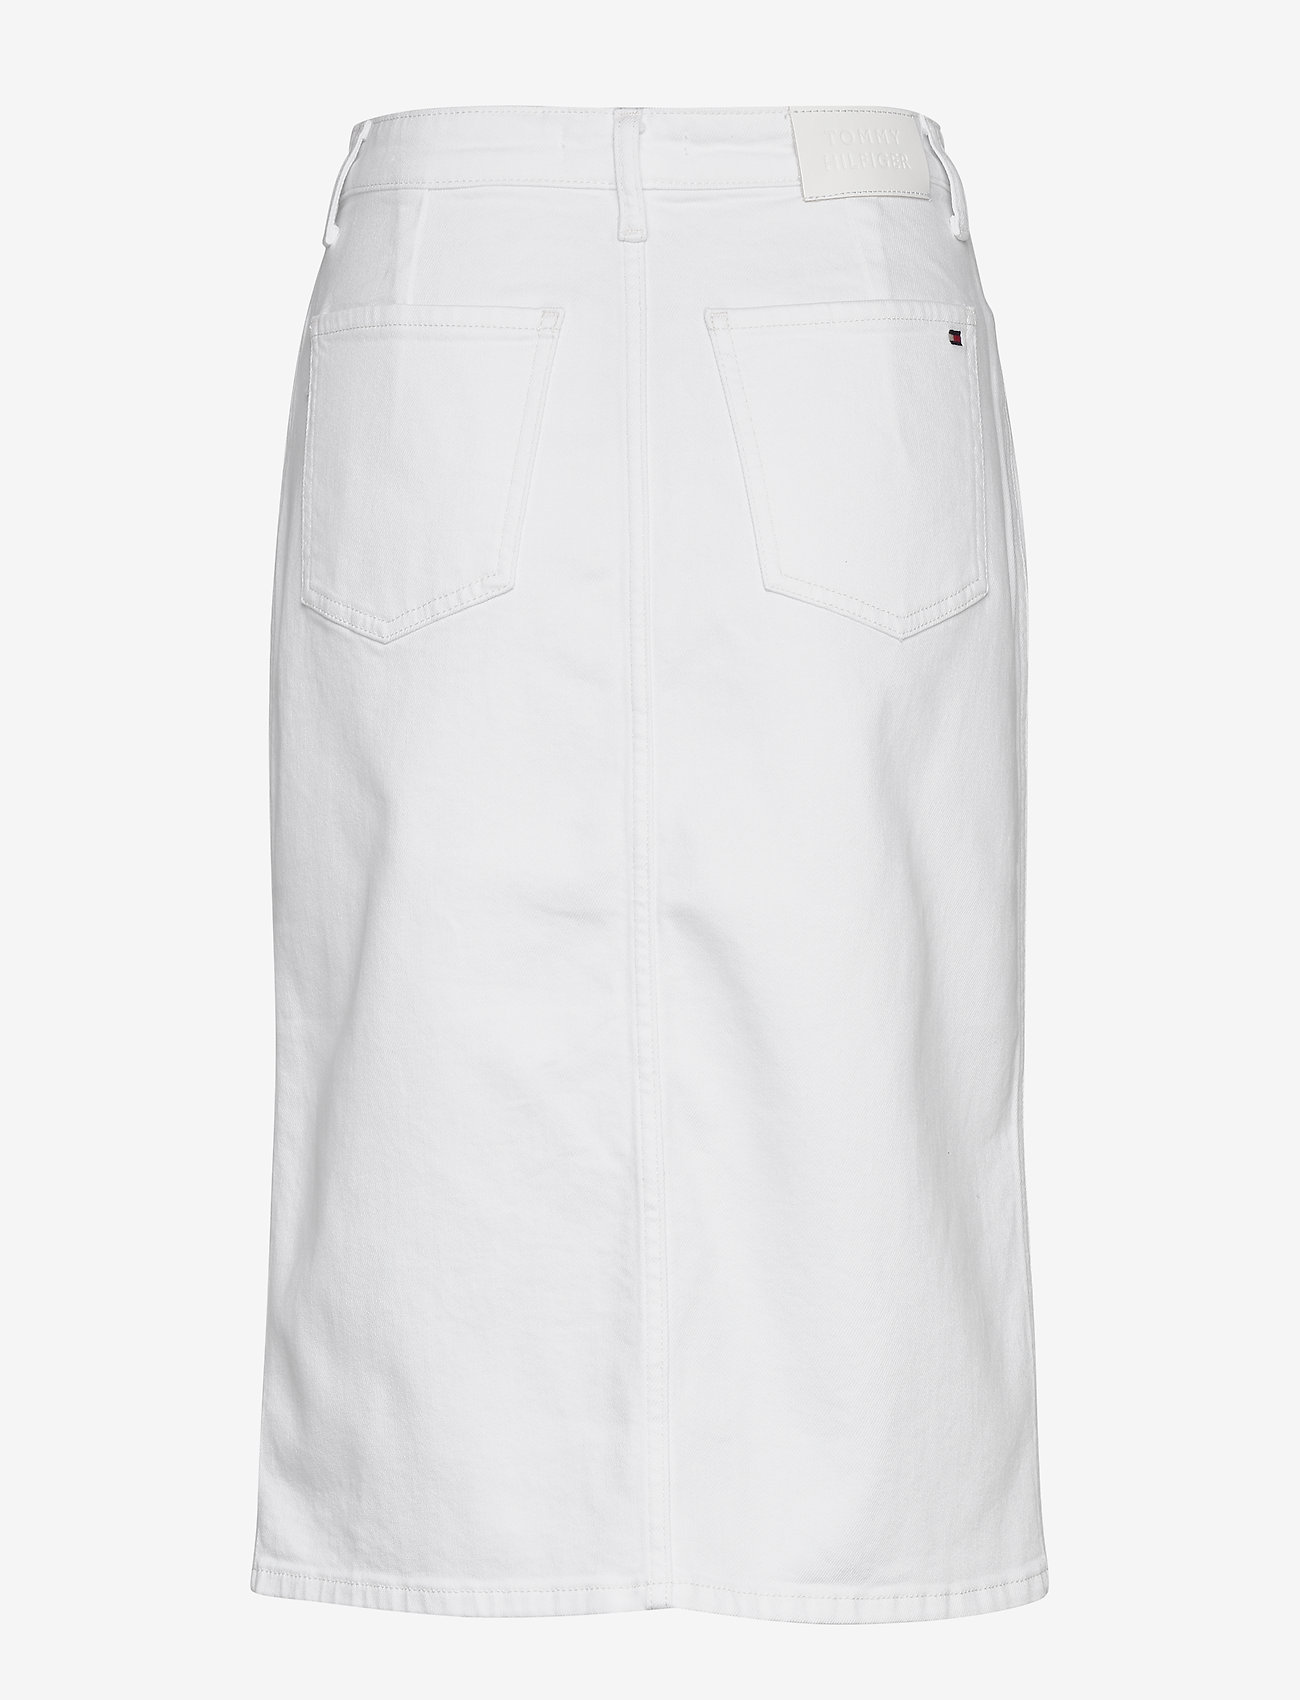 Tommy Hilfiger - PENCIL SKIRT HW WHITE - denim skirts - white - 1